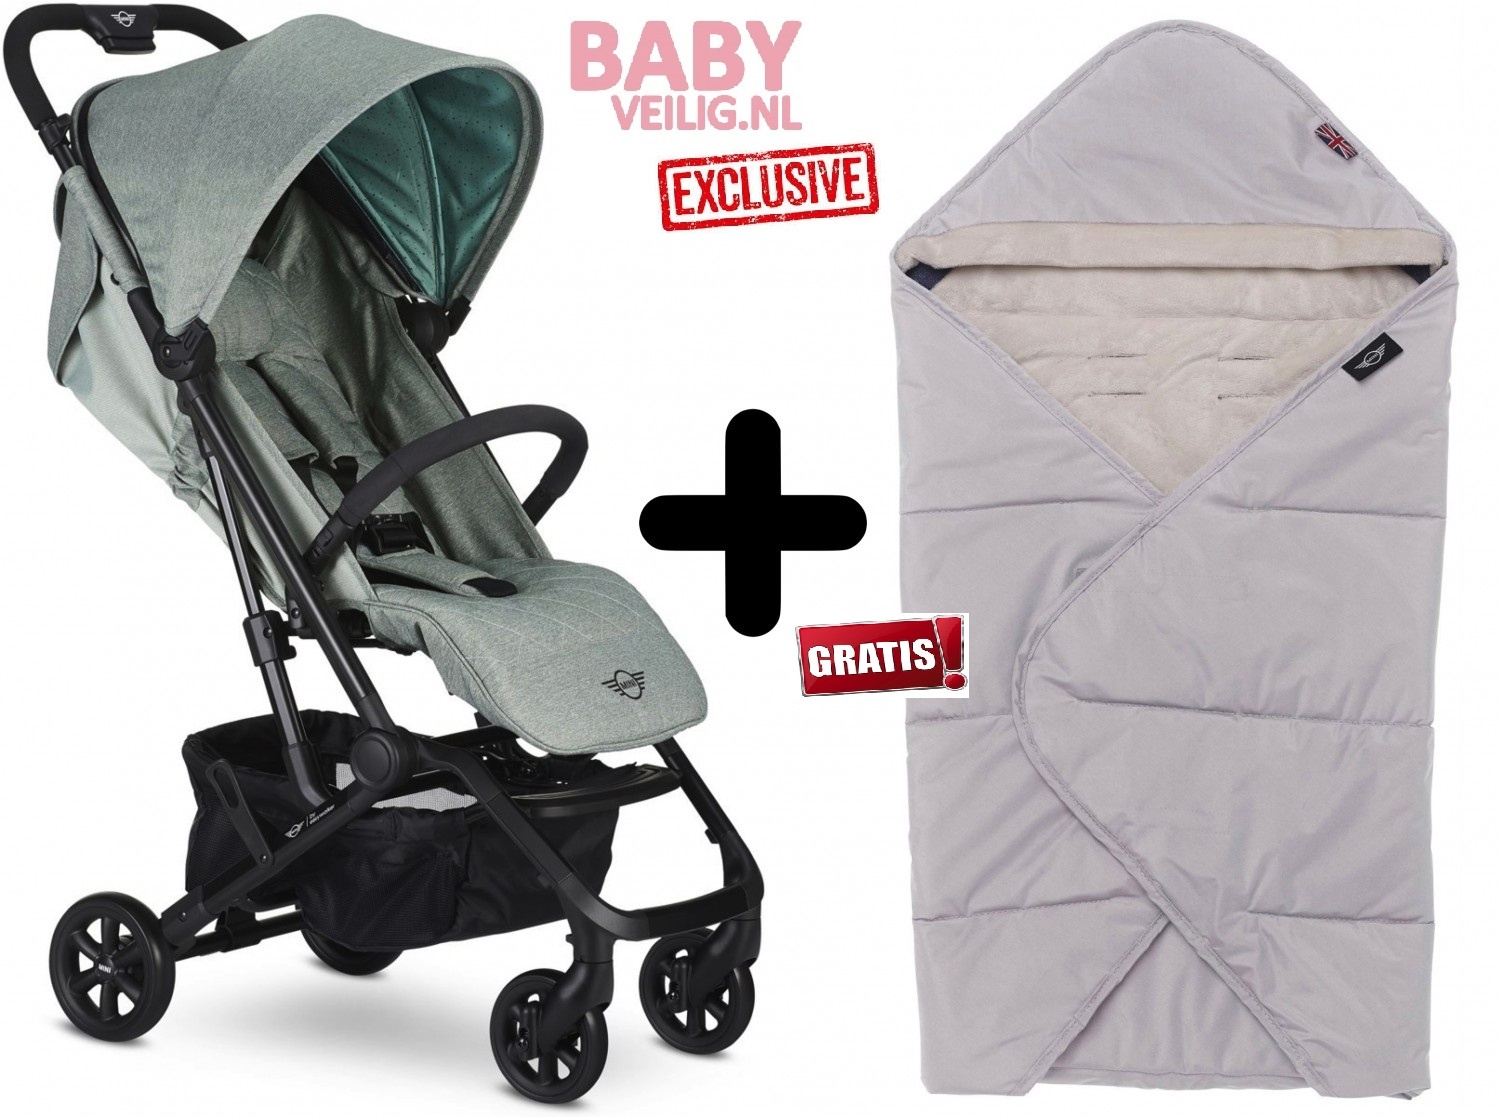 Easywalker MINI BY EASYWALKER BUGGY XS ASPEN GREEN EXCLUSIVE + MINI by Easywalker multifuncionele Co